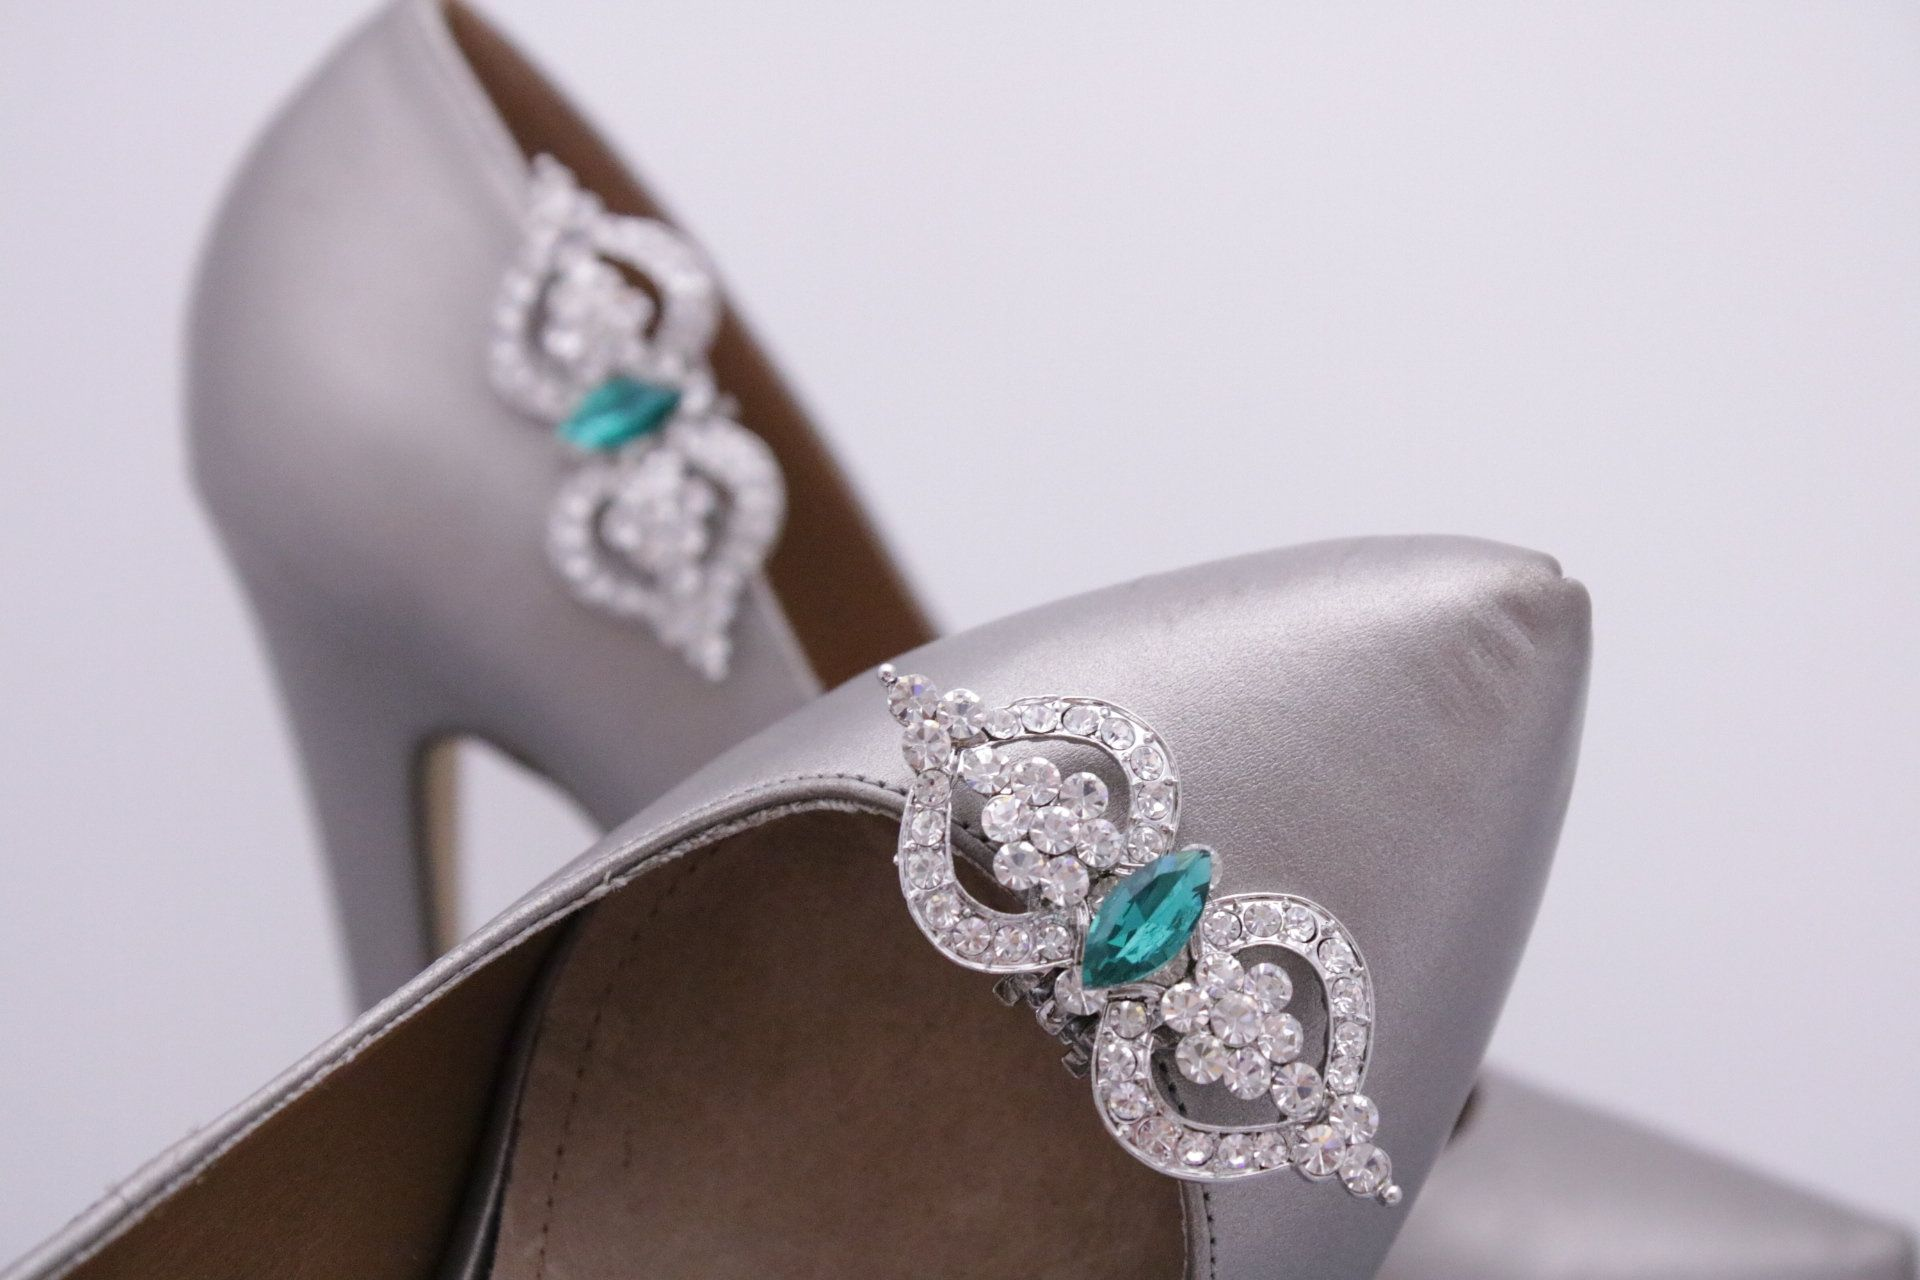 New Shoe Clips for Bridal Shoes Rhinestone Shoe Clips Wedding Shoe Clips